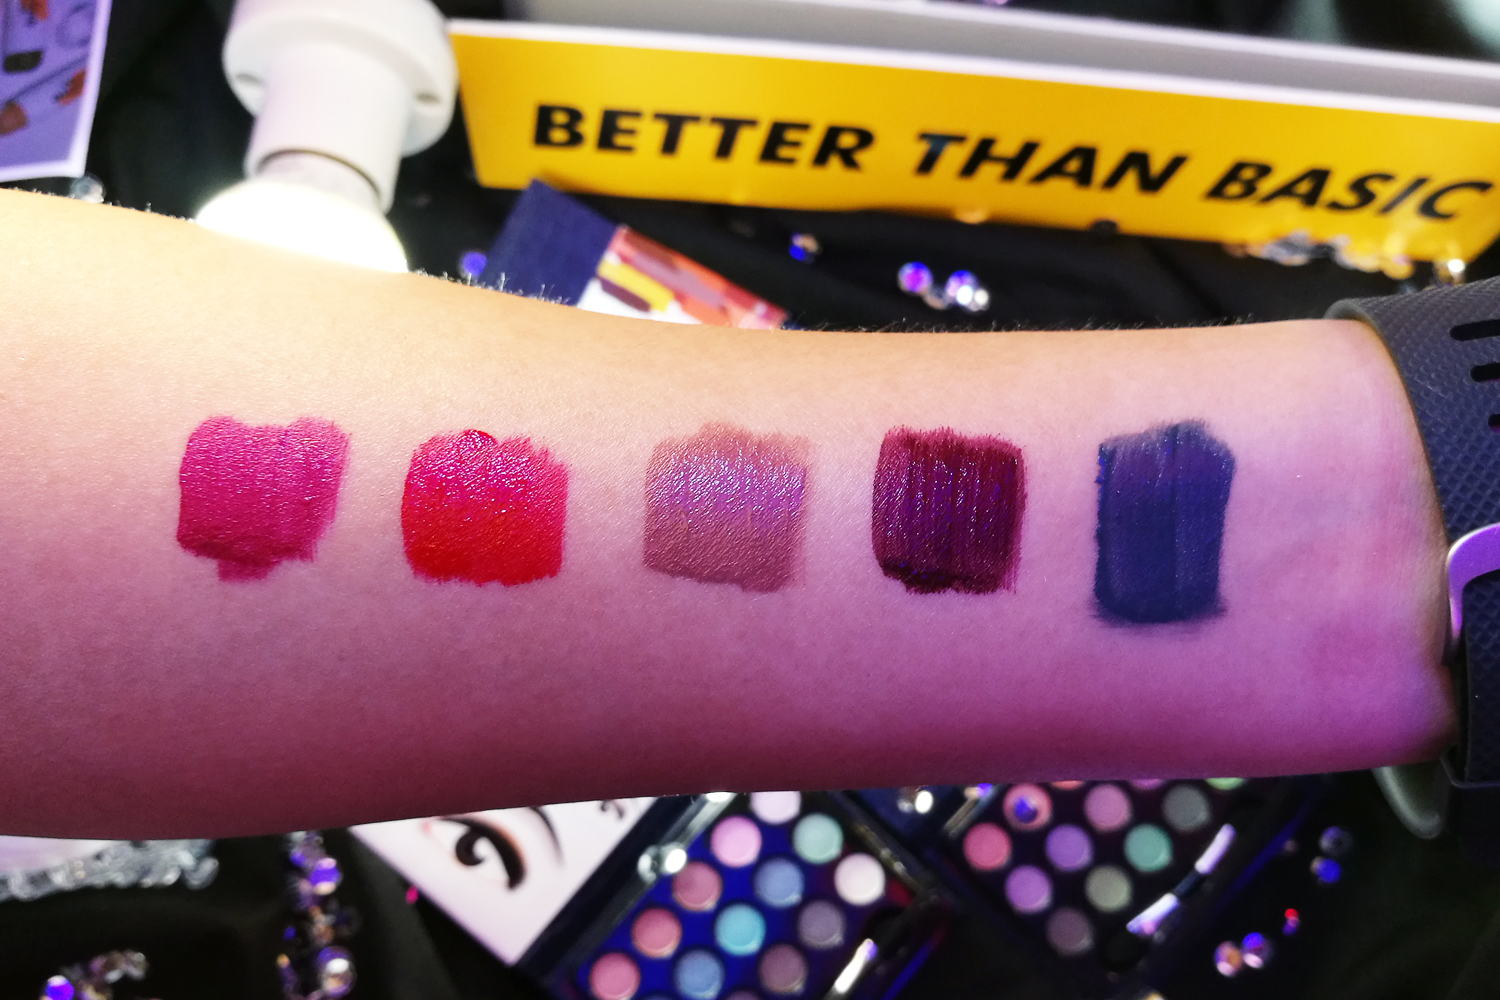 From left, some of the Mattes:Pop, In Bloom, Normcore, Upper Hand, Wall Flower